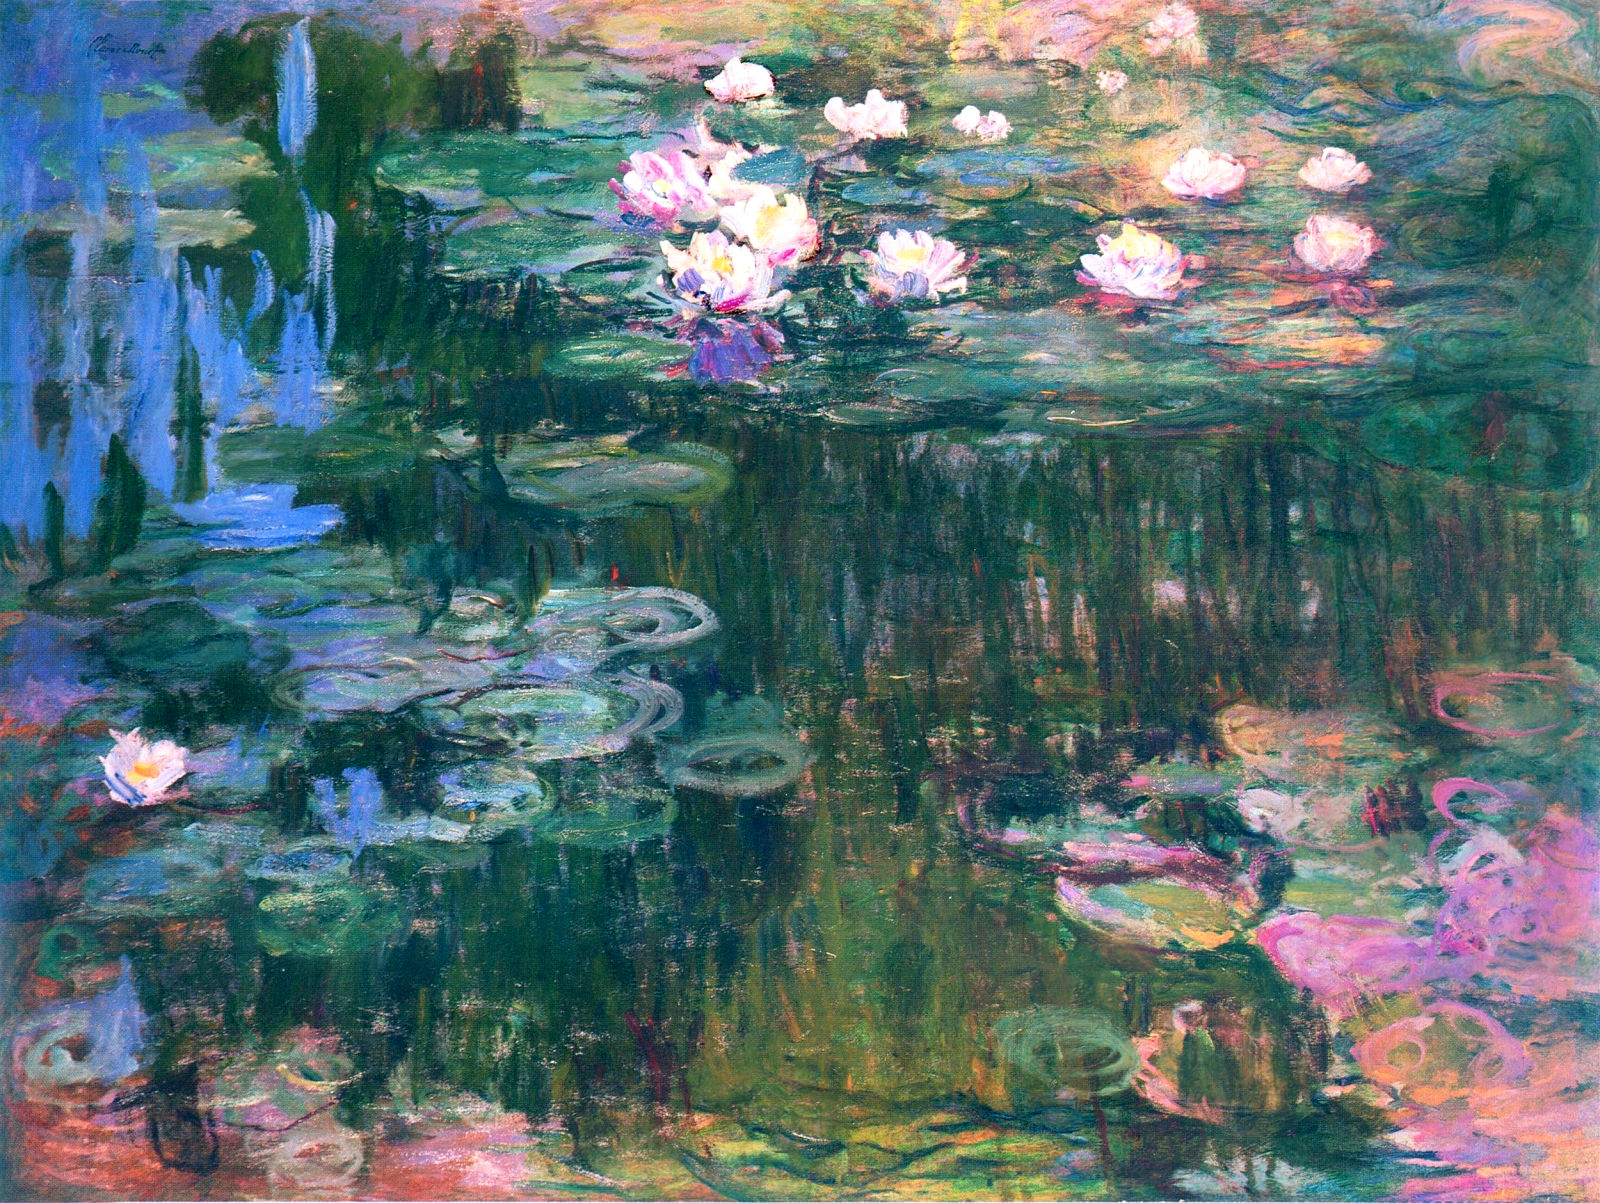 an analysis of the painting water lily pond by claude monet - from 1903, monet started a series of paintings depicting his giverny water.